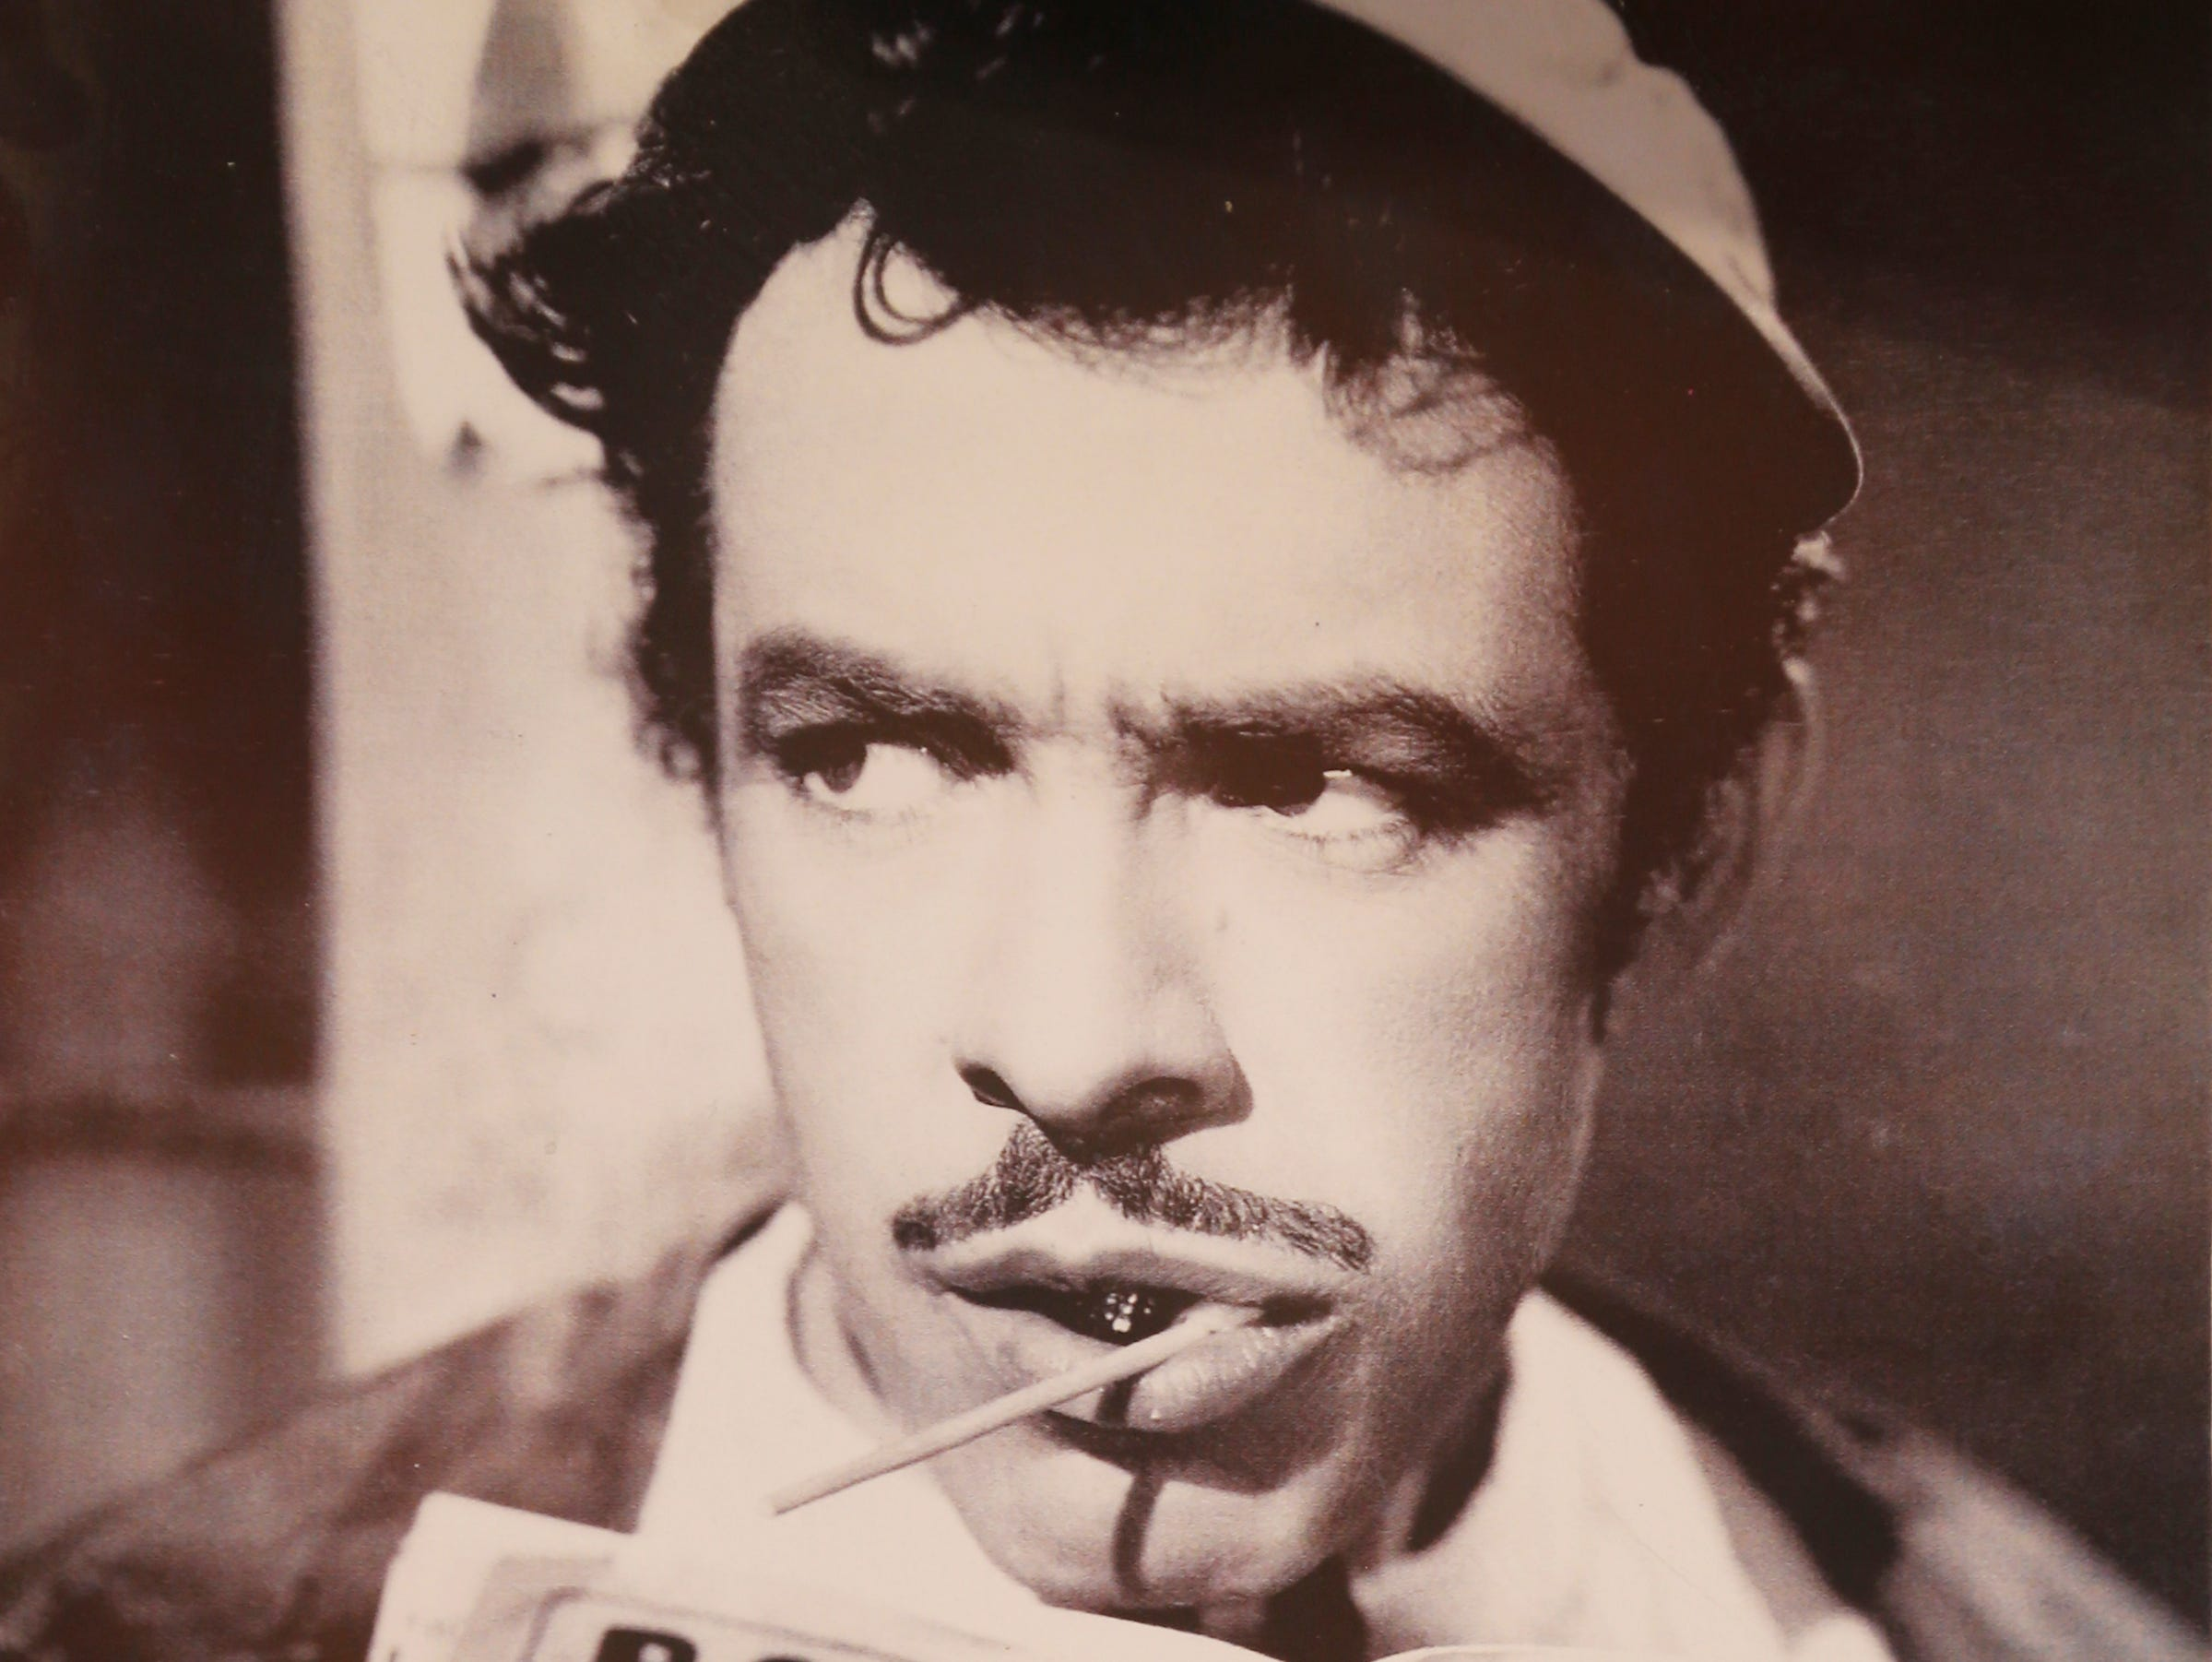 Germán Valdés, better known as Tin Tán, was an actor, singer and comedian who was raised and began his career in Juárez, Mexico.